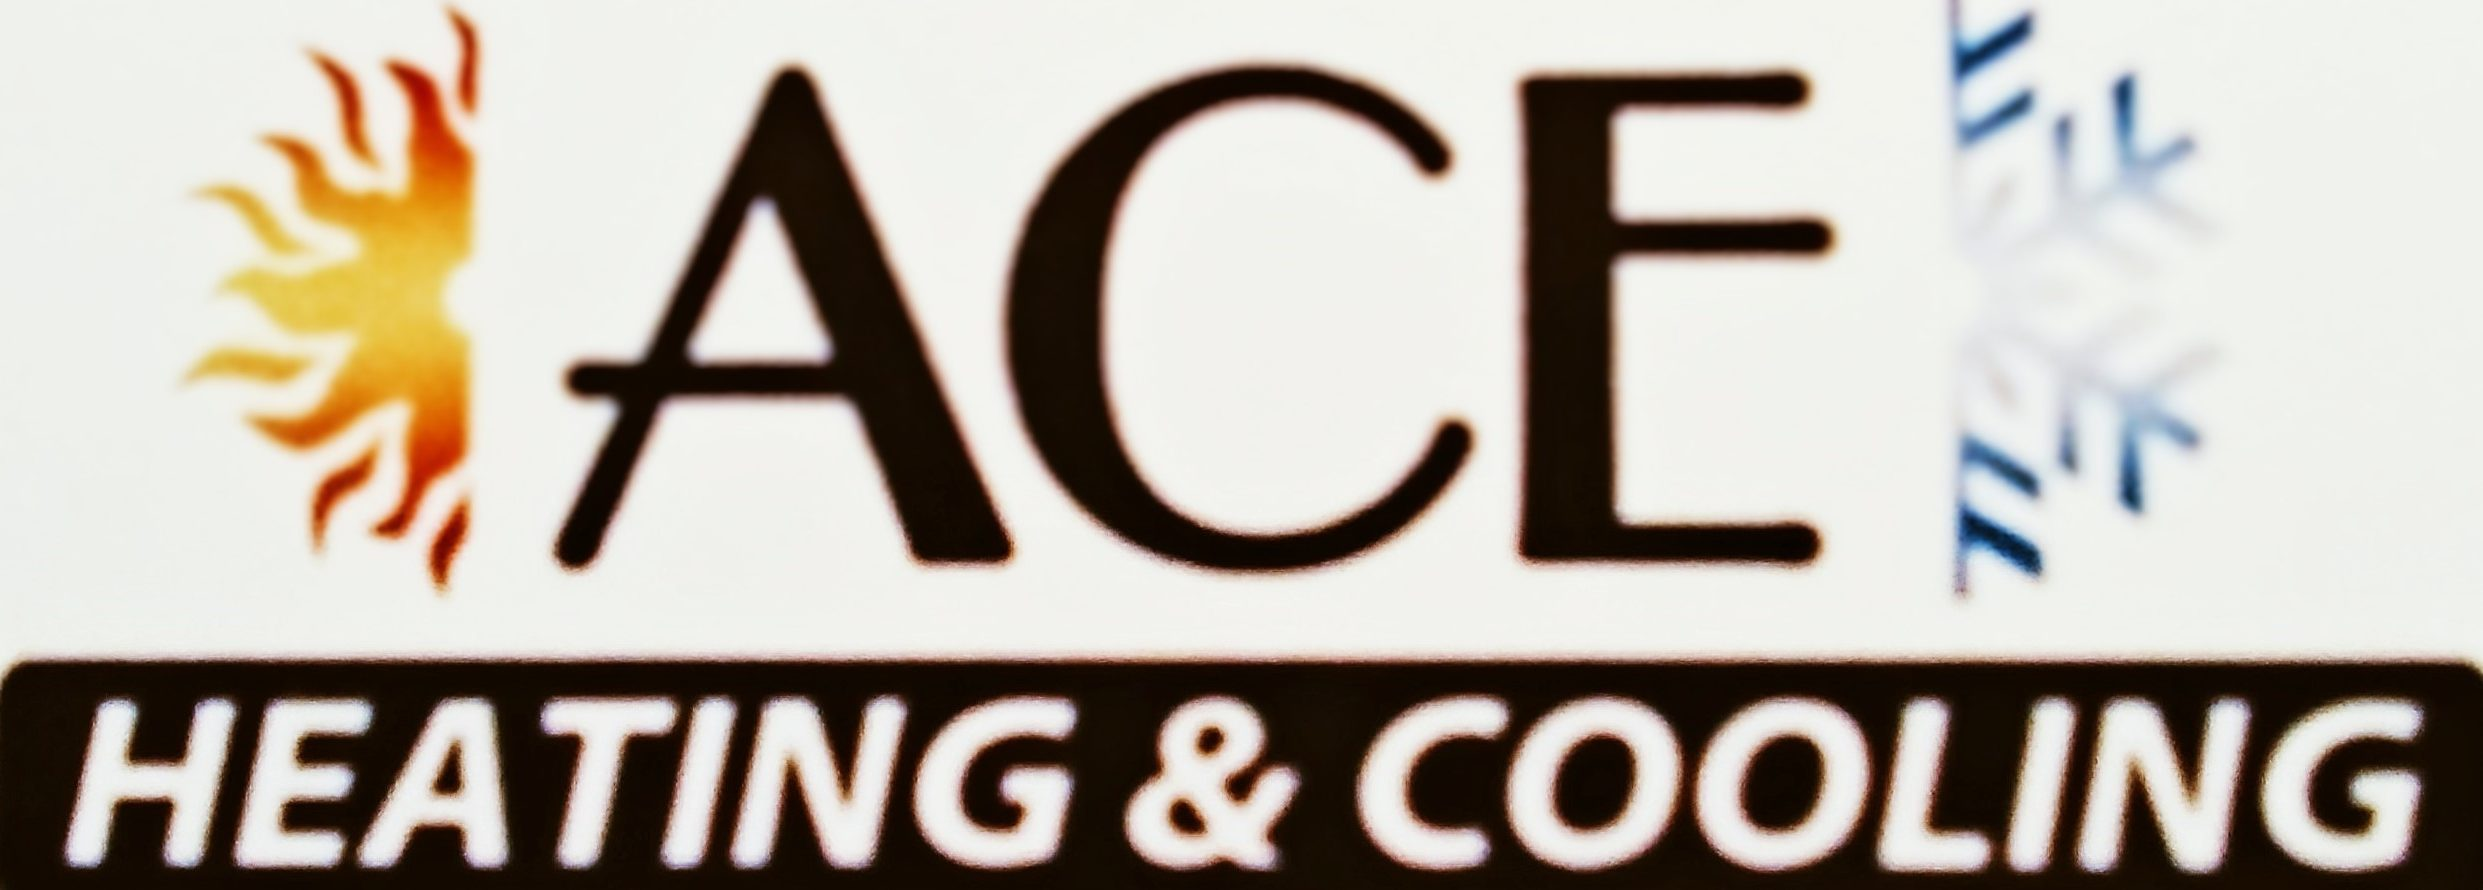 ACE Heating & Cooling Crossville, TN